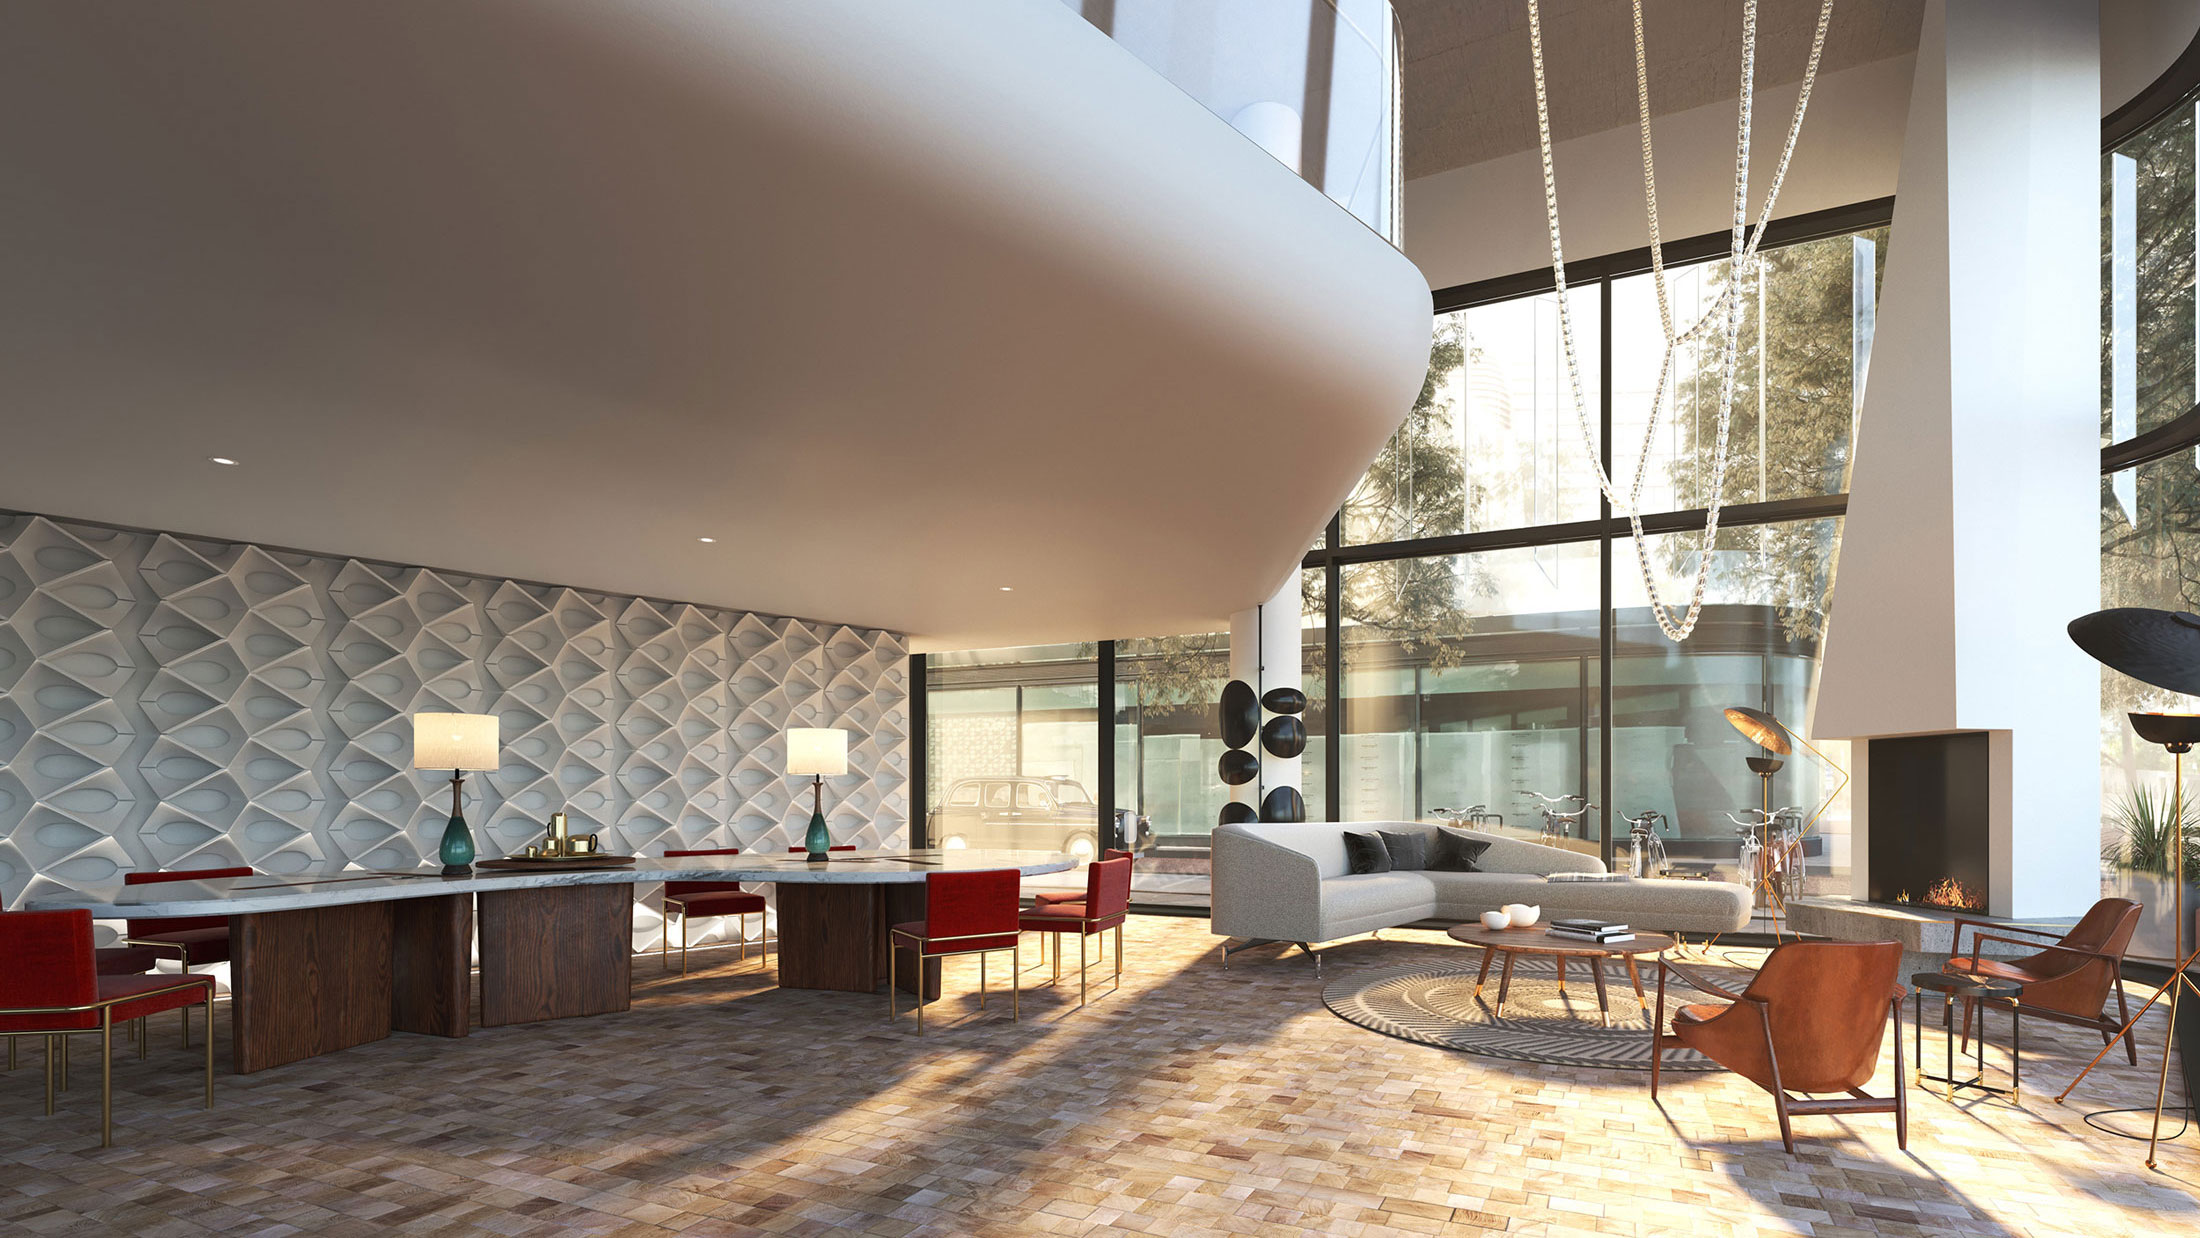 Architectural Rendering of the interior of the Bankside Hotel project located in London, England